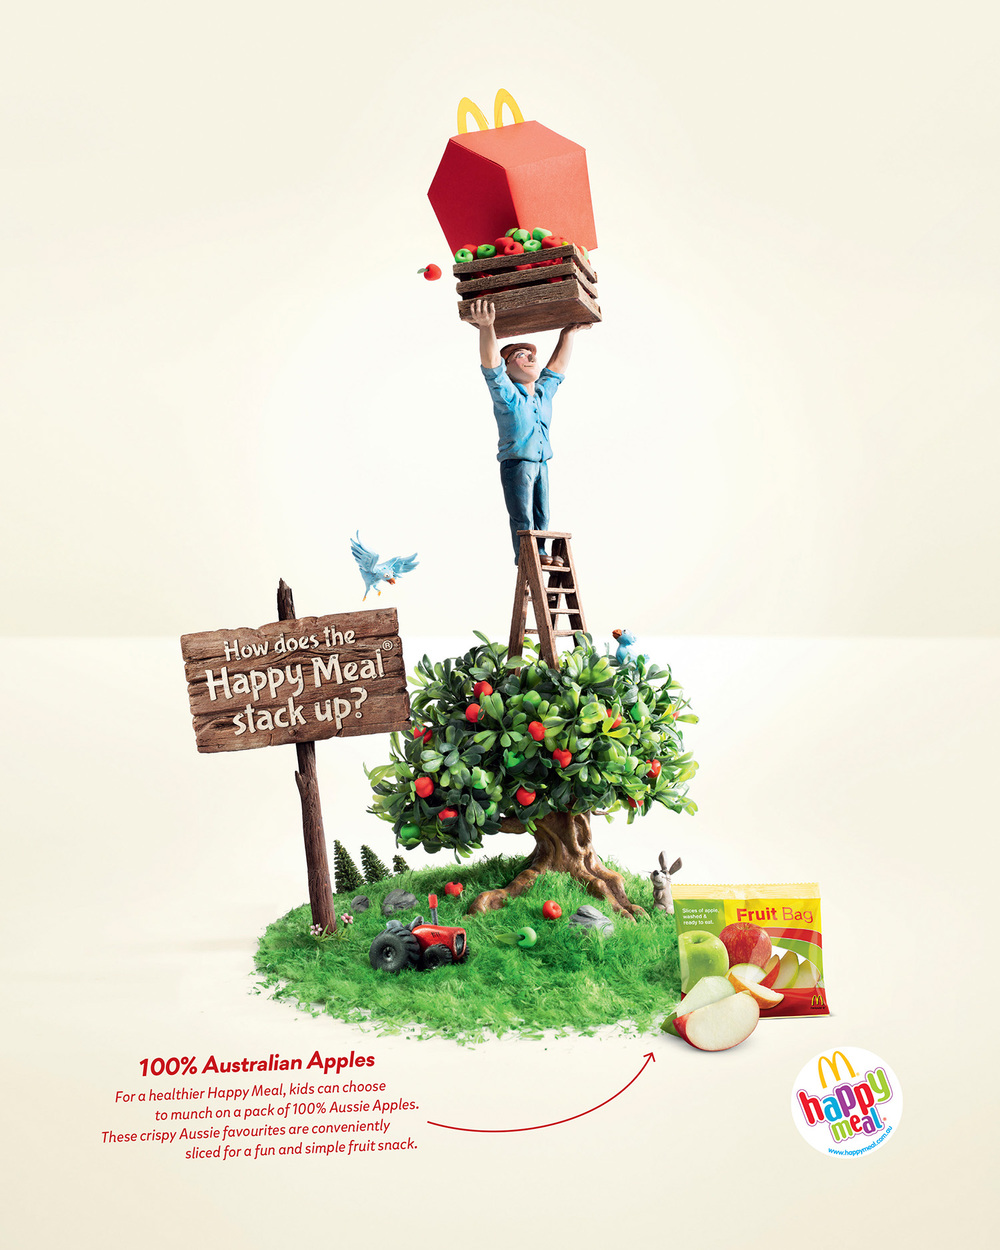 McDonalds  Agency: Leo Burnett  Art Director: Brendan Donnelly  Copywriter: Guy Futcher  Retouching: Electric Art